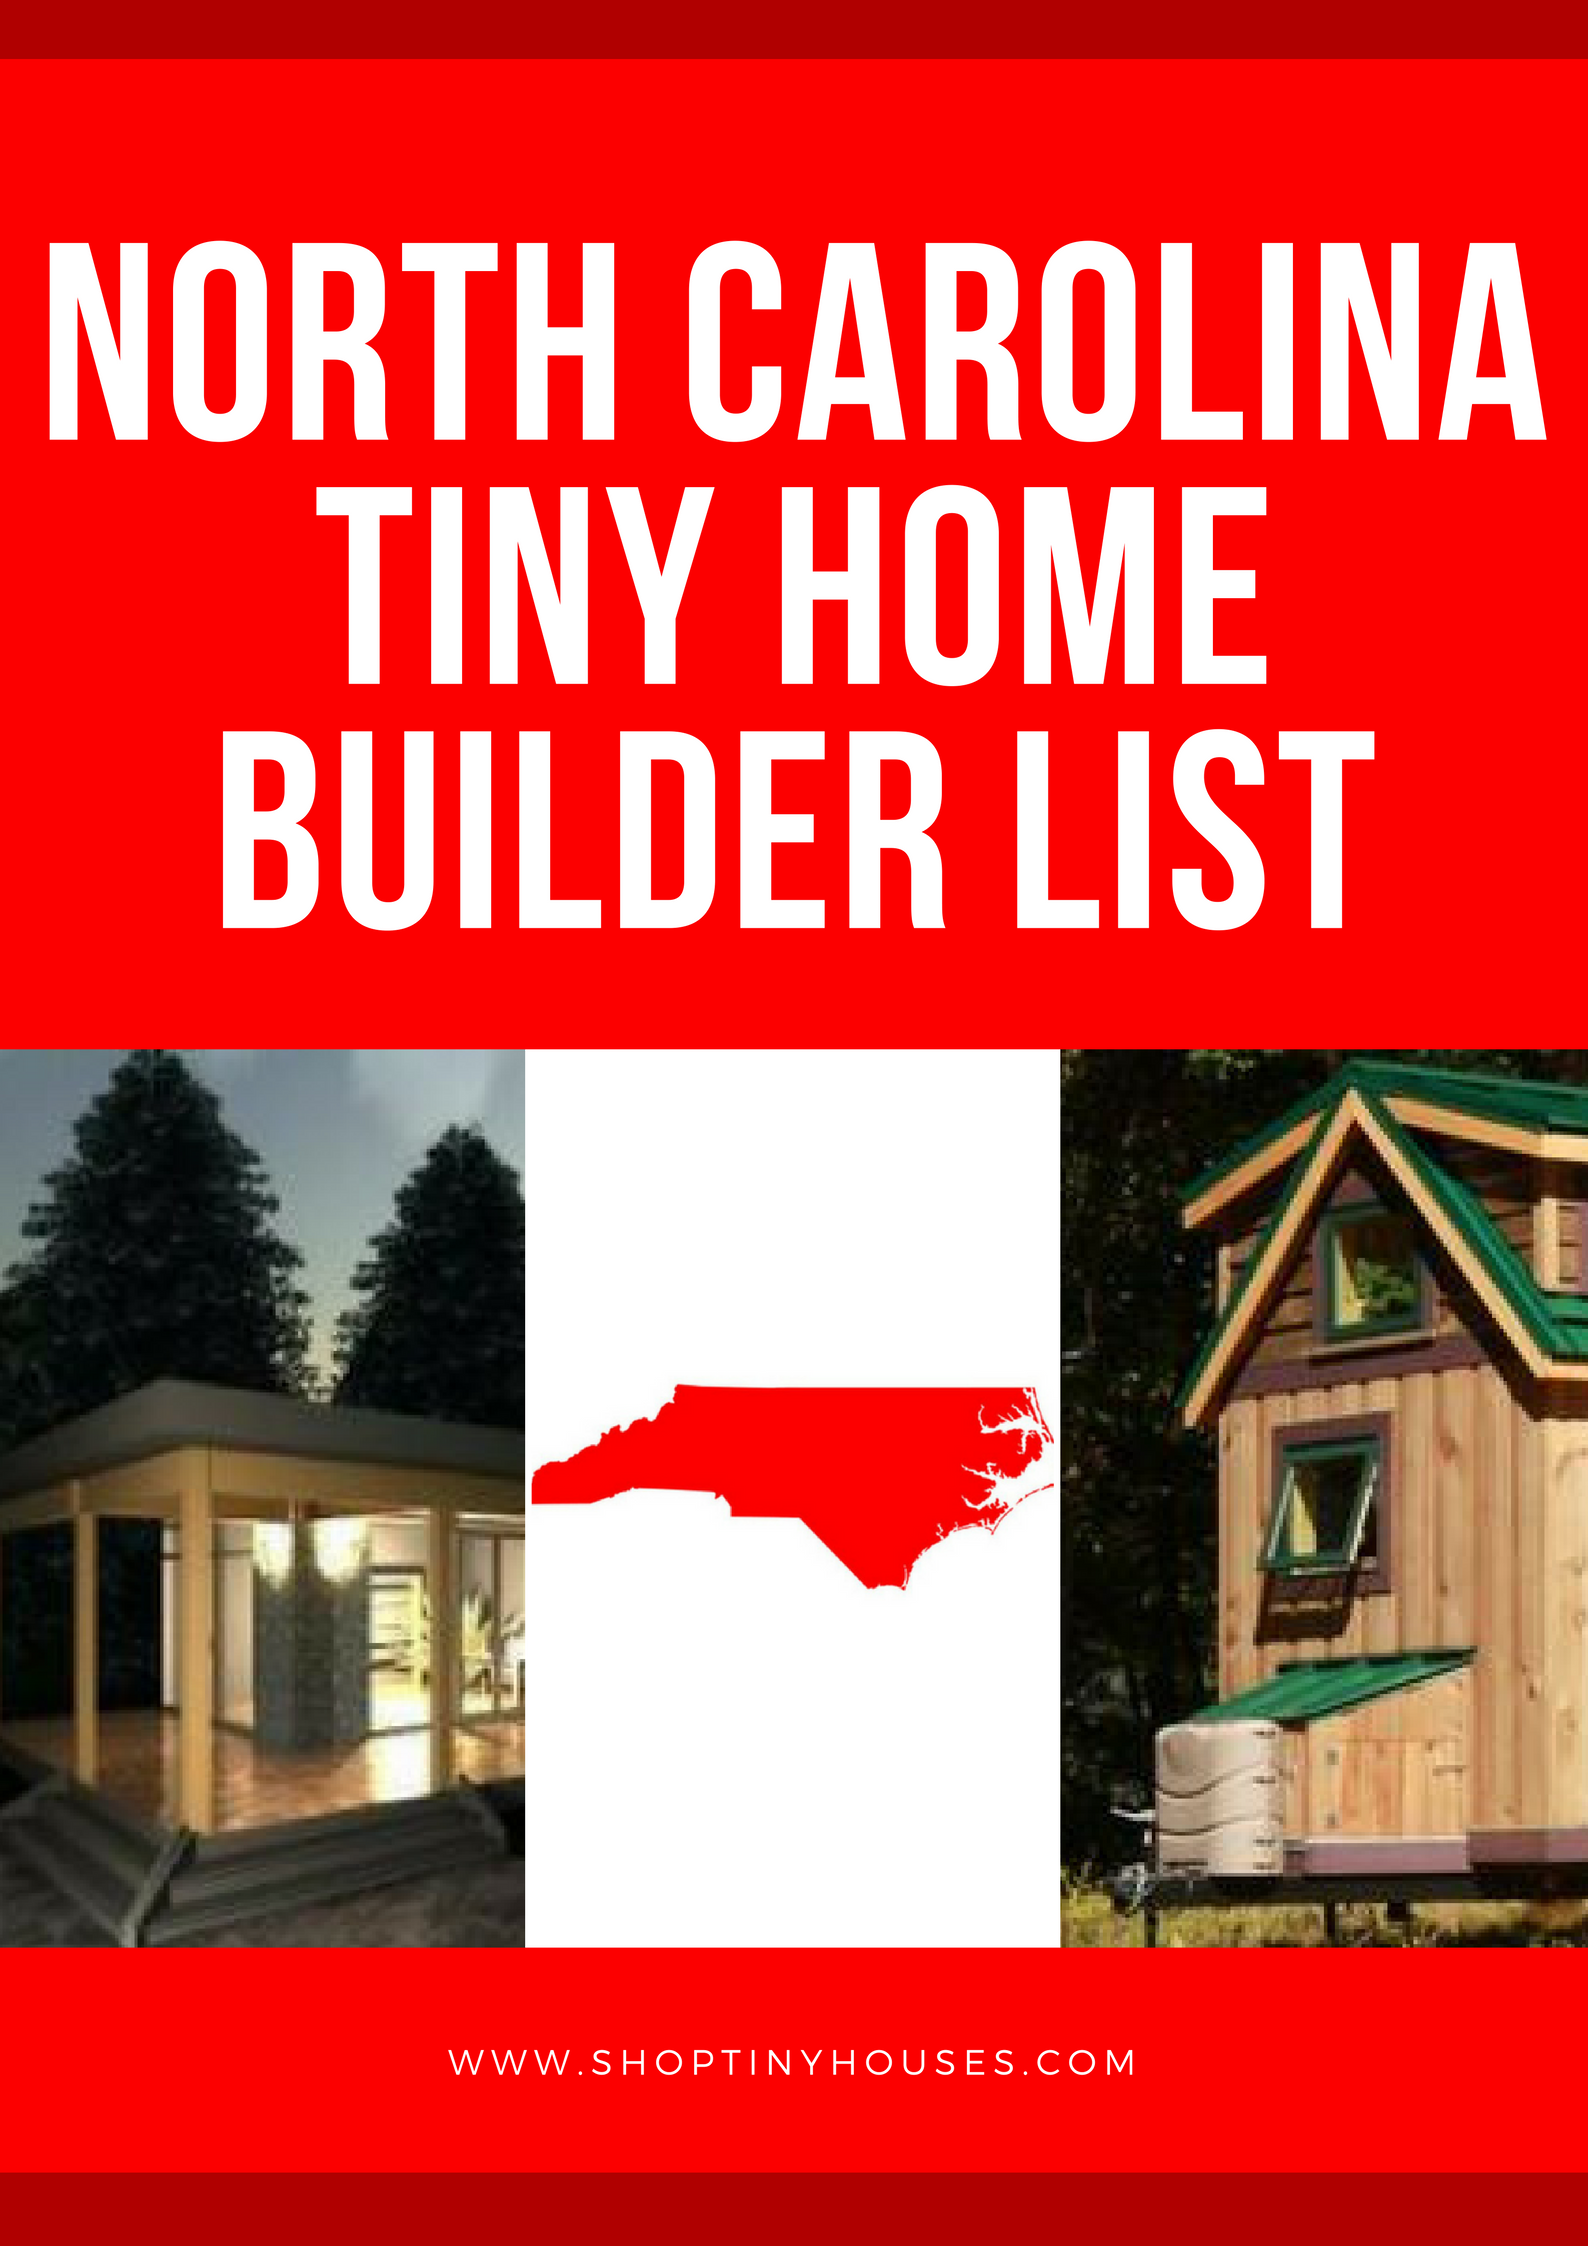 Shop Tiny Houses Best Prices On Tiny Home Supplies Tiny House Community Tiny House Home Builders